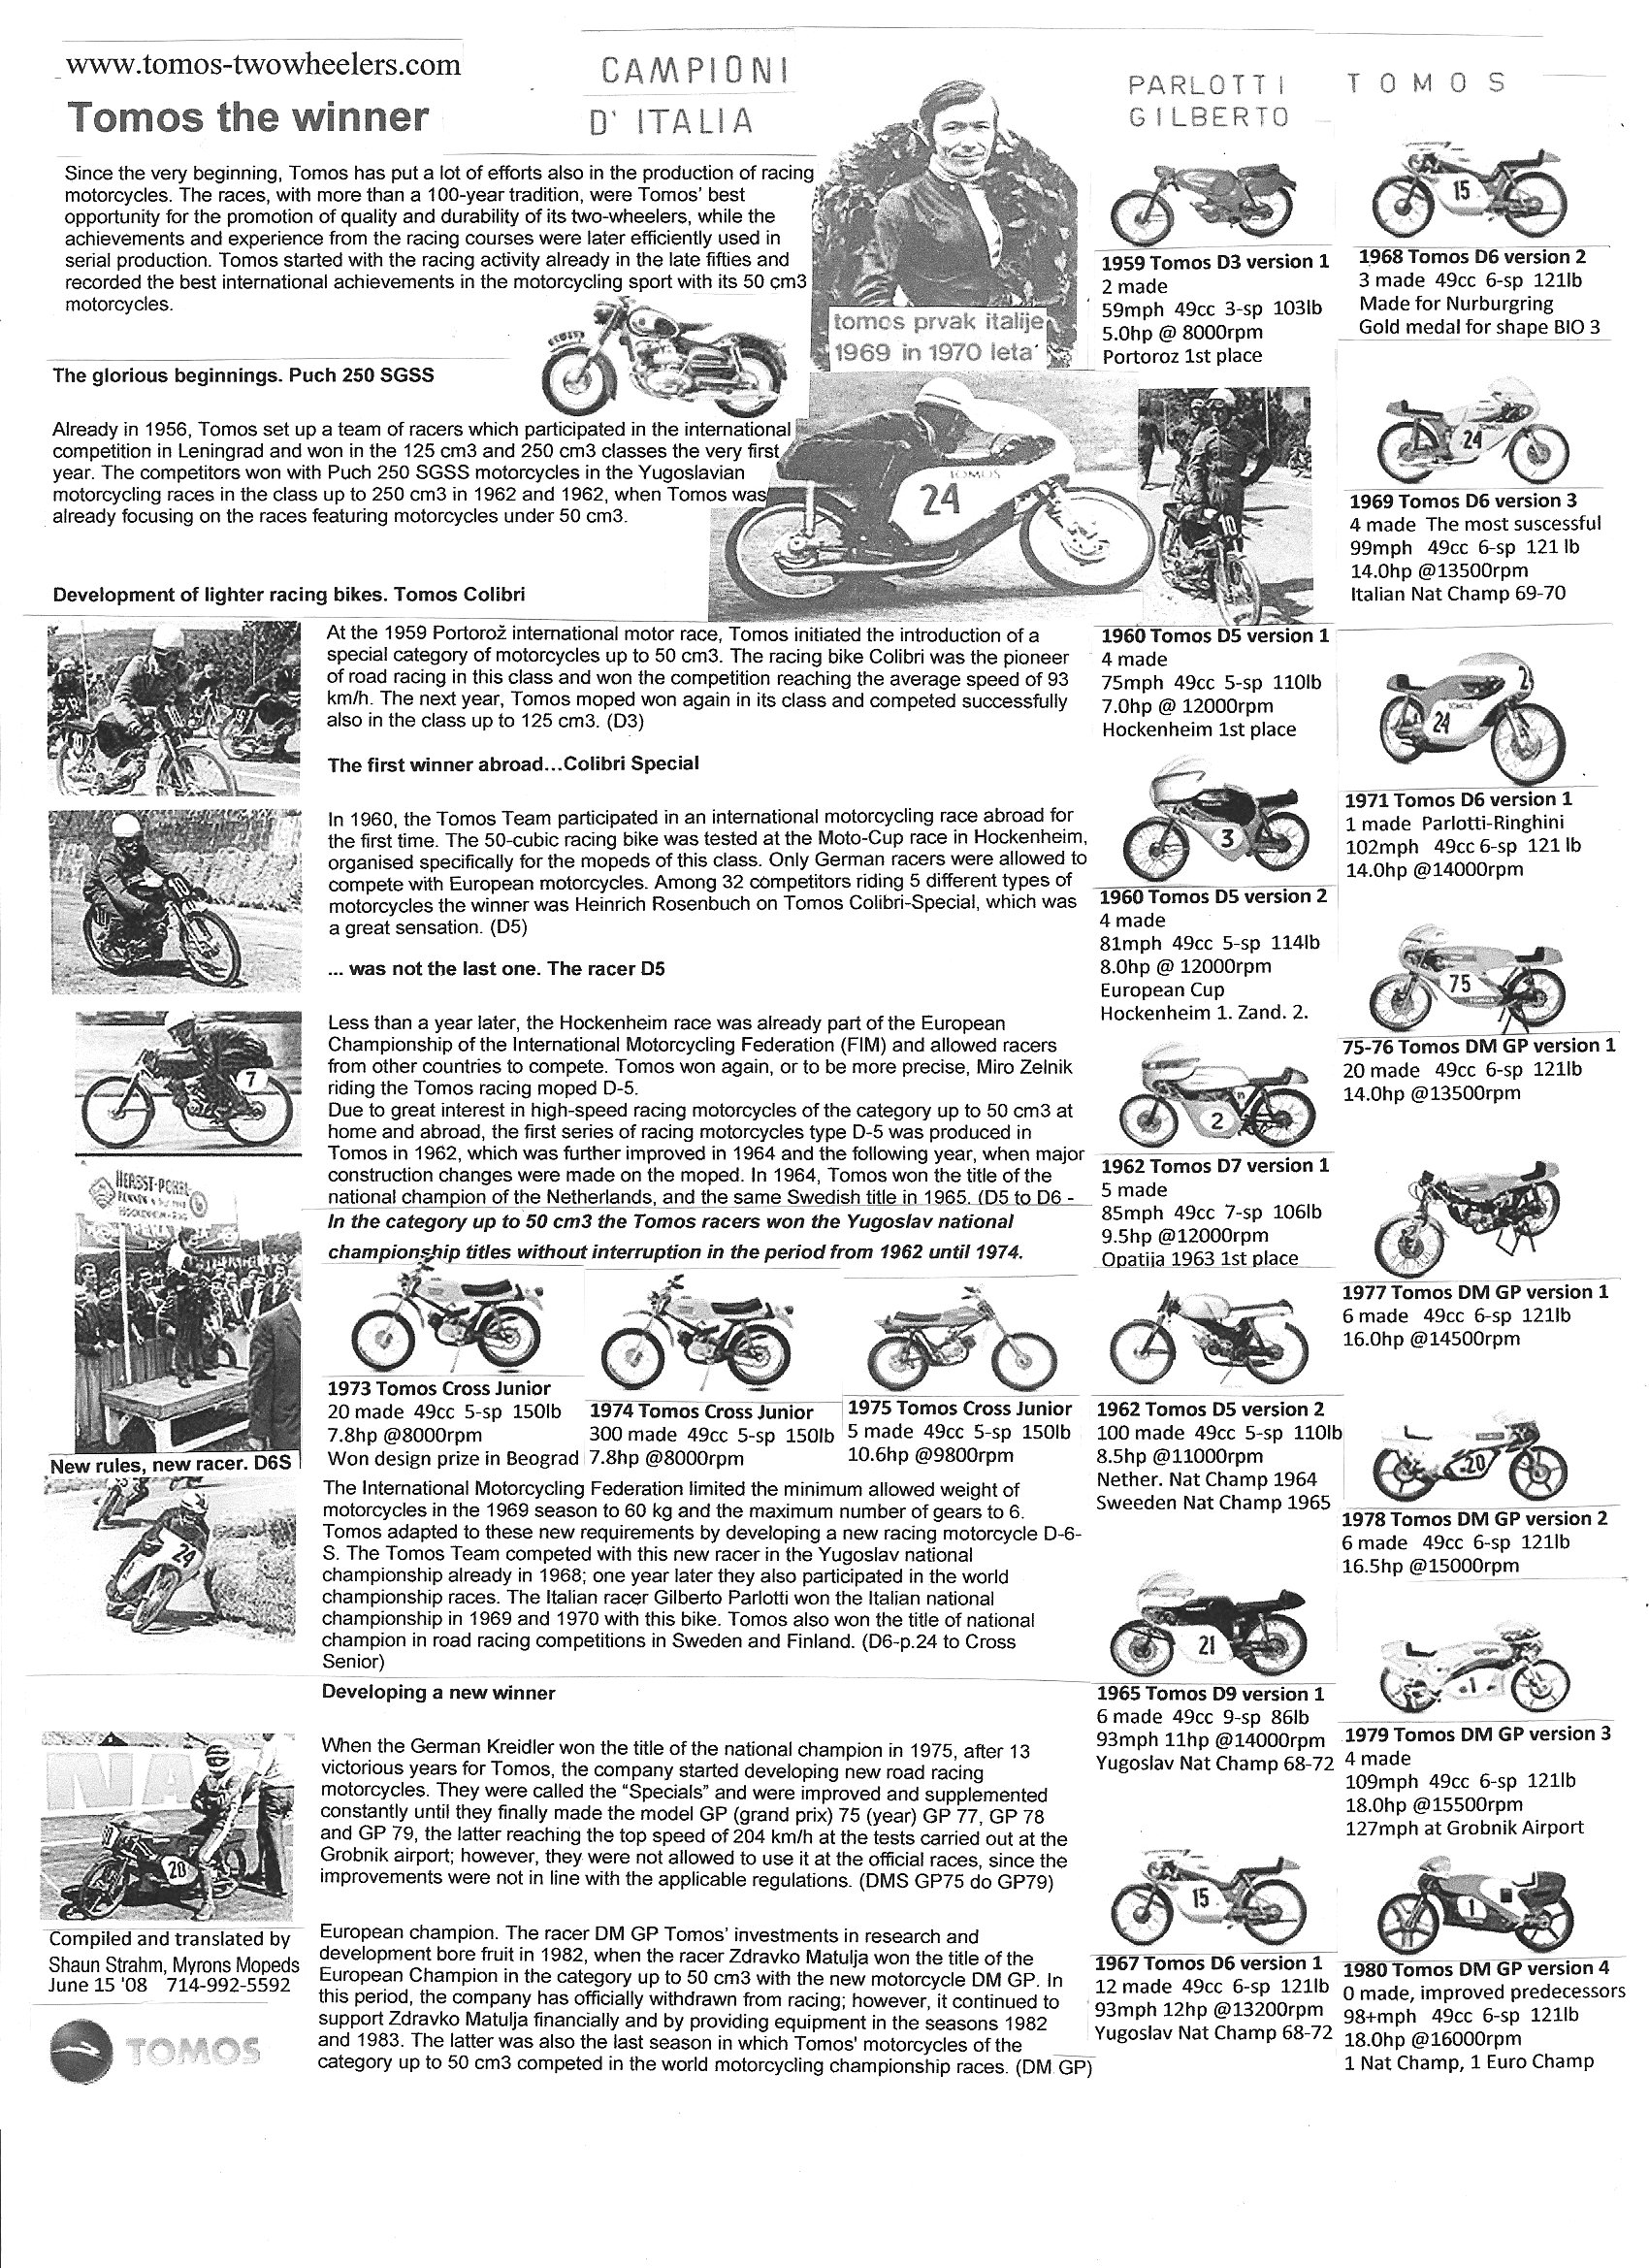 Verucci Wiring Diagram together with Verucci Wiring Diagram also Verucci Gas Scooters furthermore  on verucci 50cc with helmet and box